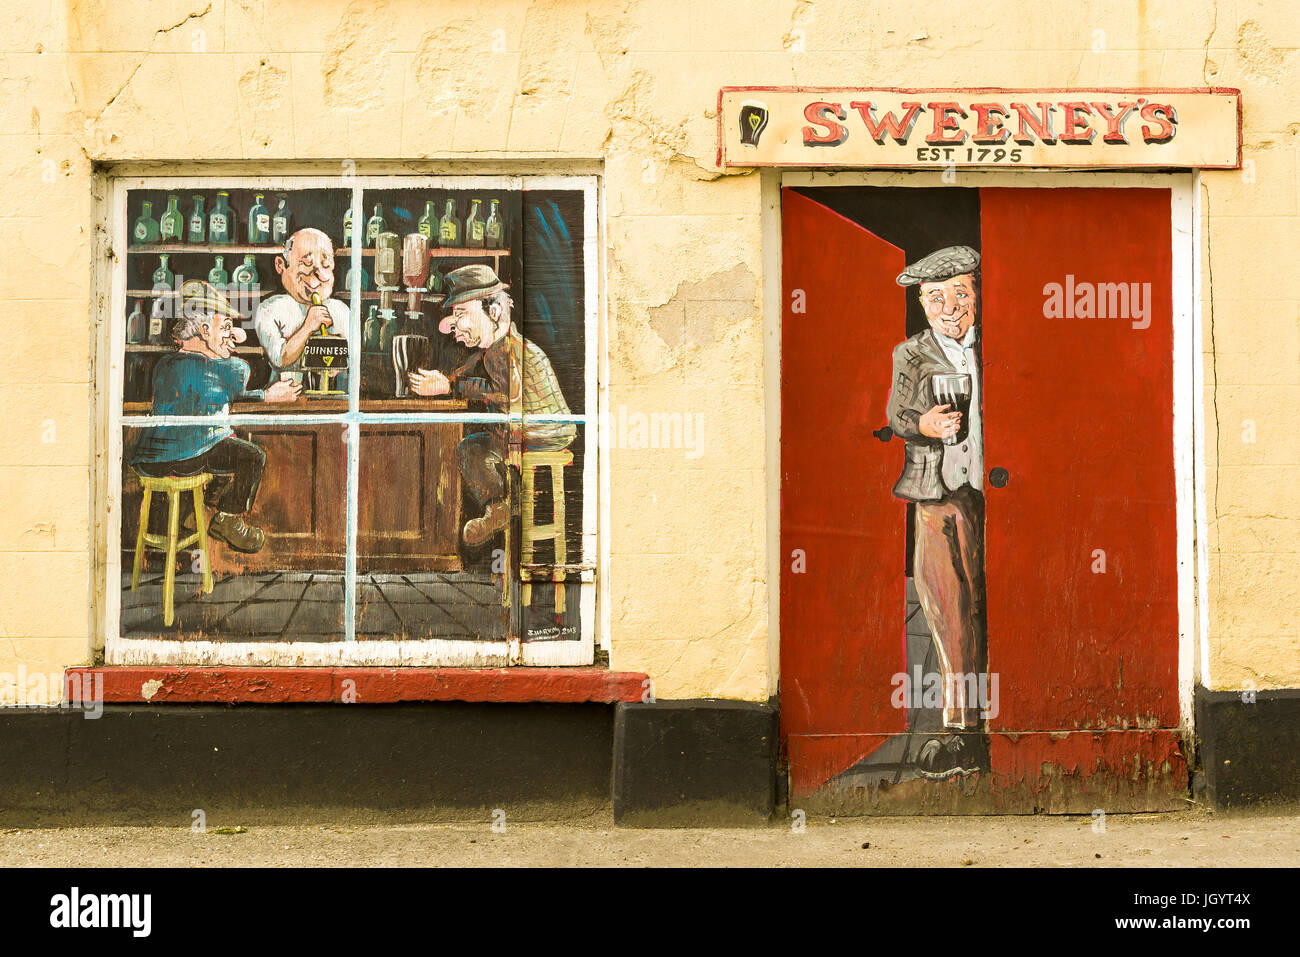 Sweeney\'s Bar old Pub wall art at Ramelton County Donegal Ireland ...